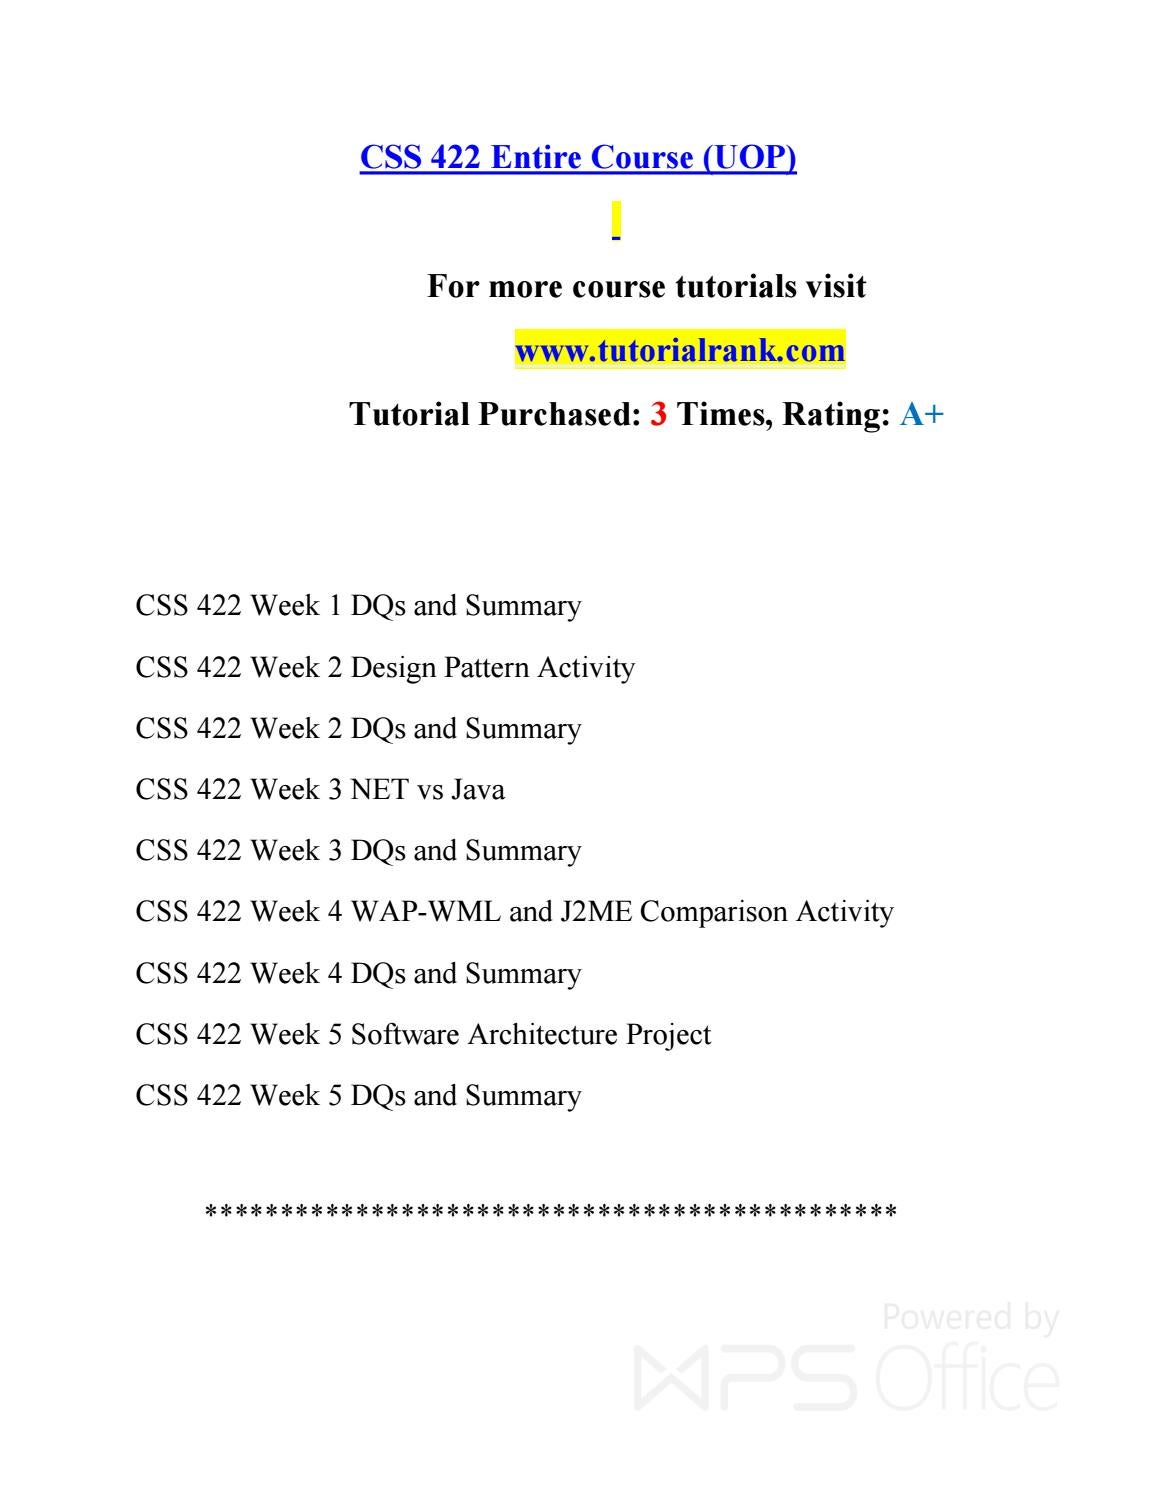 Css 422 Possible Is Everything--tutorialrank com by c u n